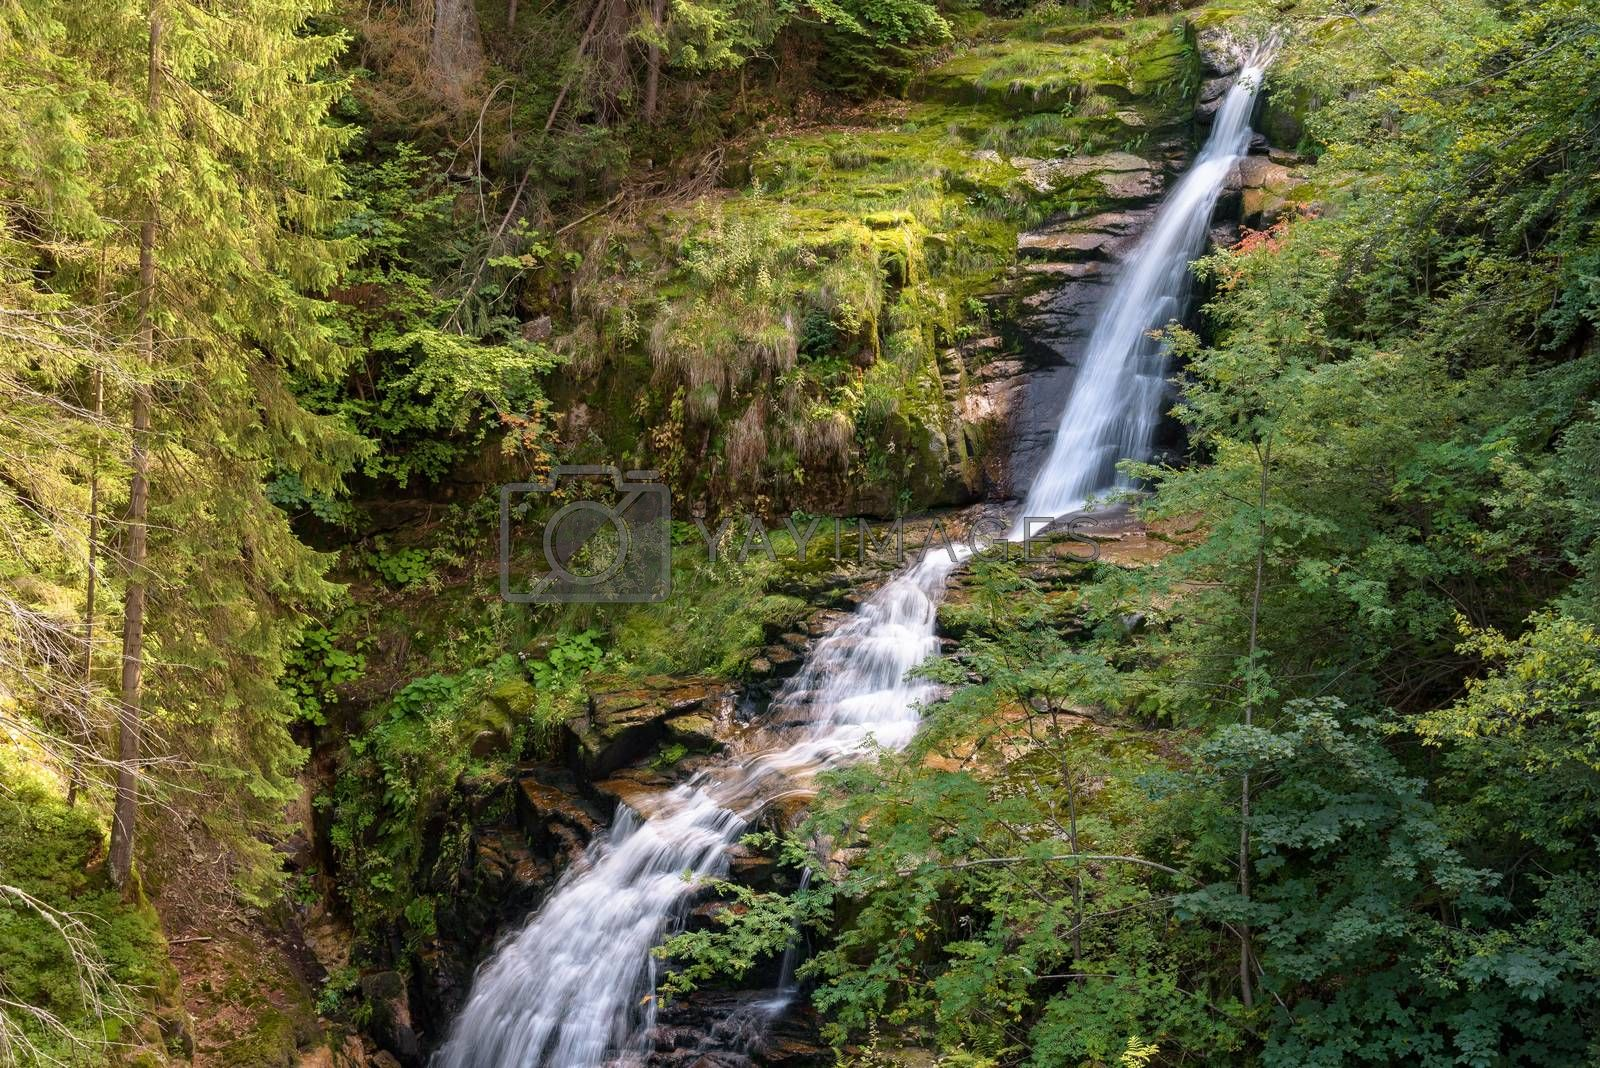 Blurred water of waterfall of Kamienczyk river - the highest waterfall in polish Giant Mountains